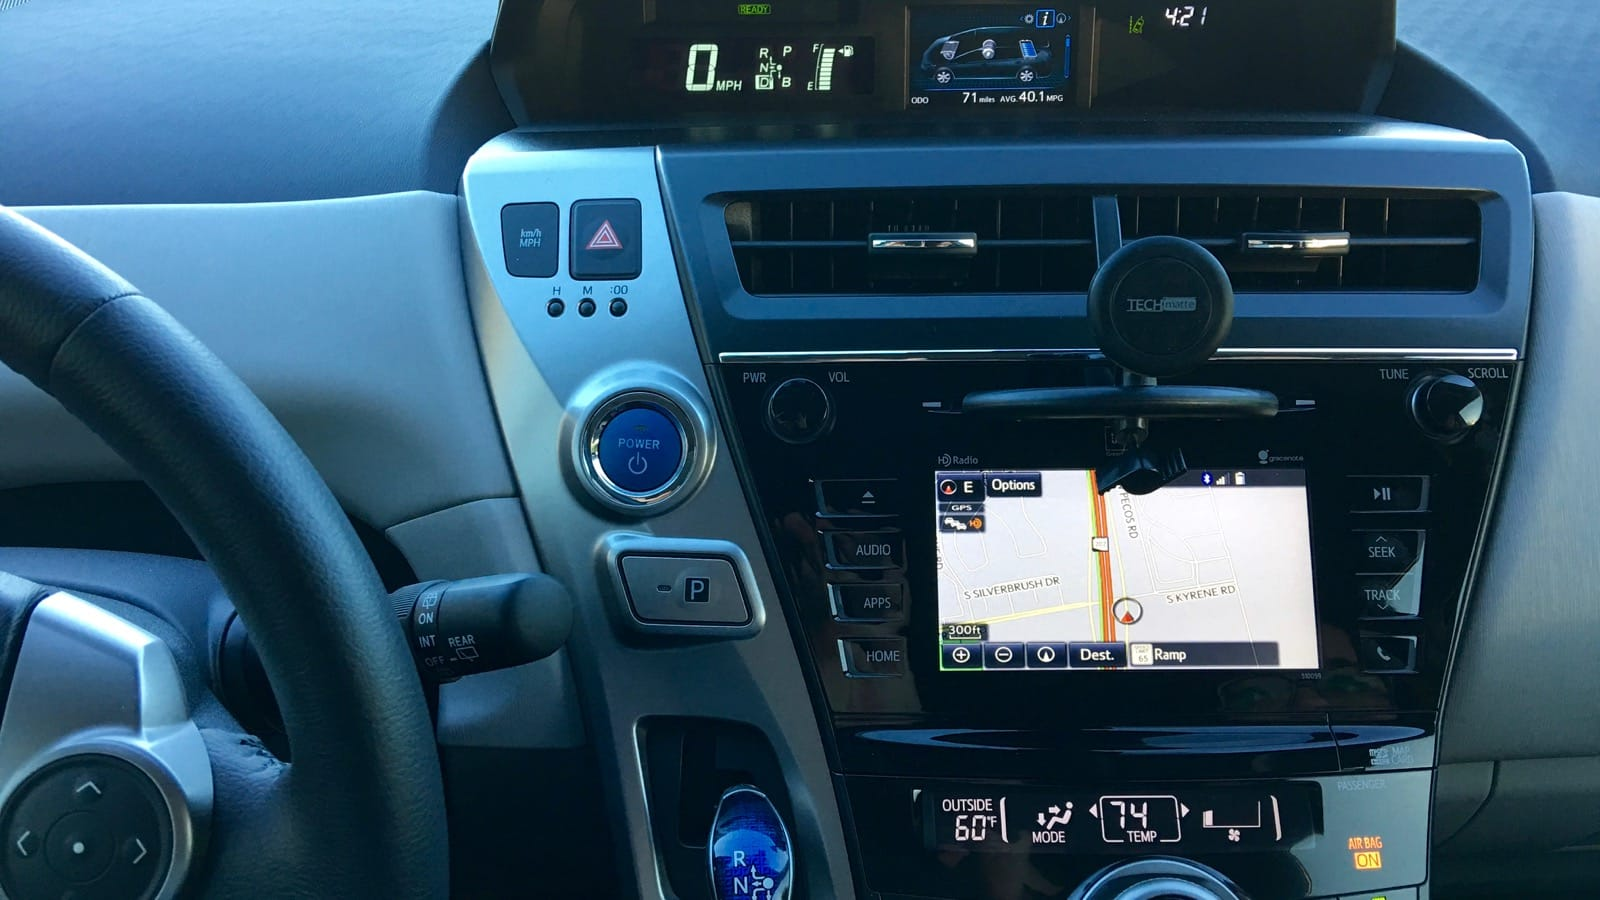 The cockpit of the 2016 Prius v